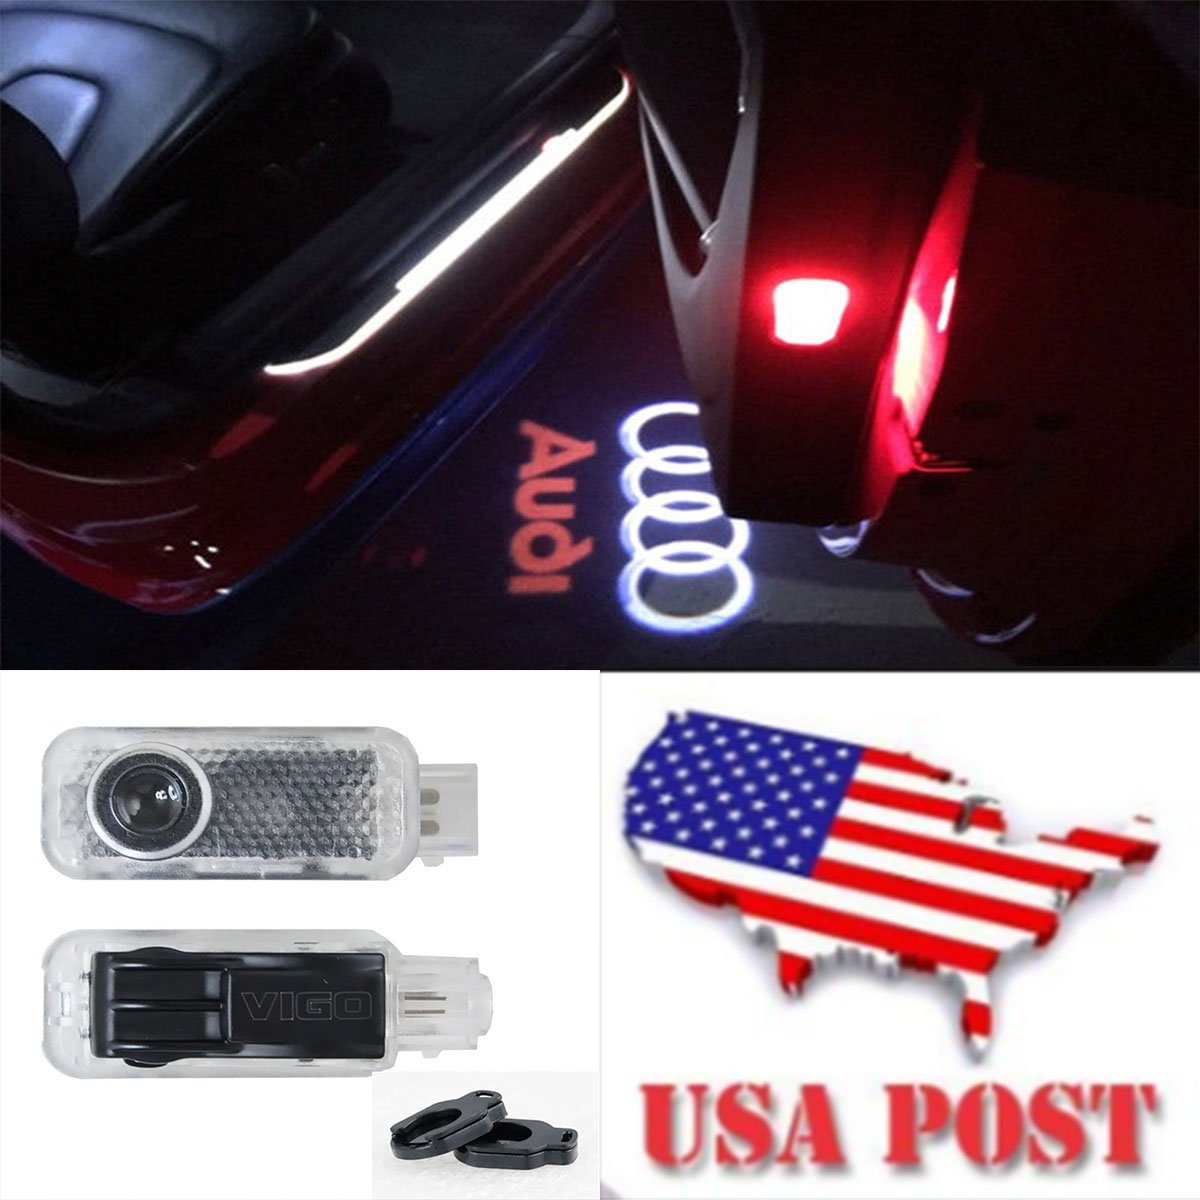 CNAutoLicht 2X Cree LED Door Step Courtesy Light Welcome Light Laser Shadow Logo Projector Lamp For Audi A1 A2 A3 A4 A5 A6 A7 A8 Q2 Q3 Q6 Q5 Q7 R8 TT RS4 RS5 RS6 RS7 S3 S4 S5 S6 S7 S8 #1